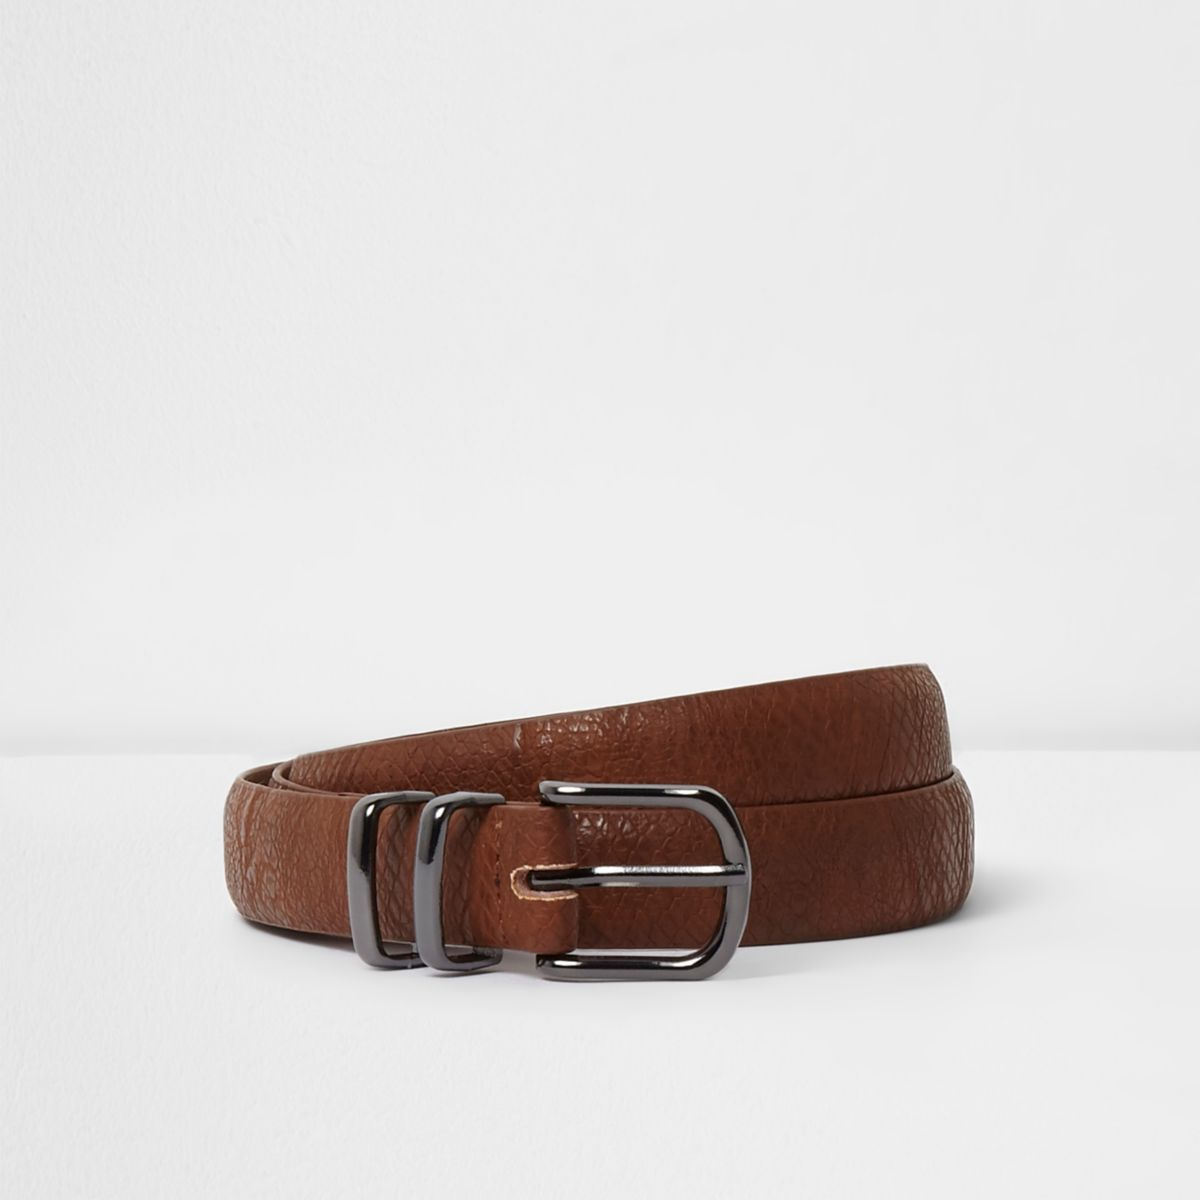 Tan snake embossed belt